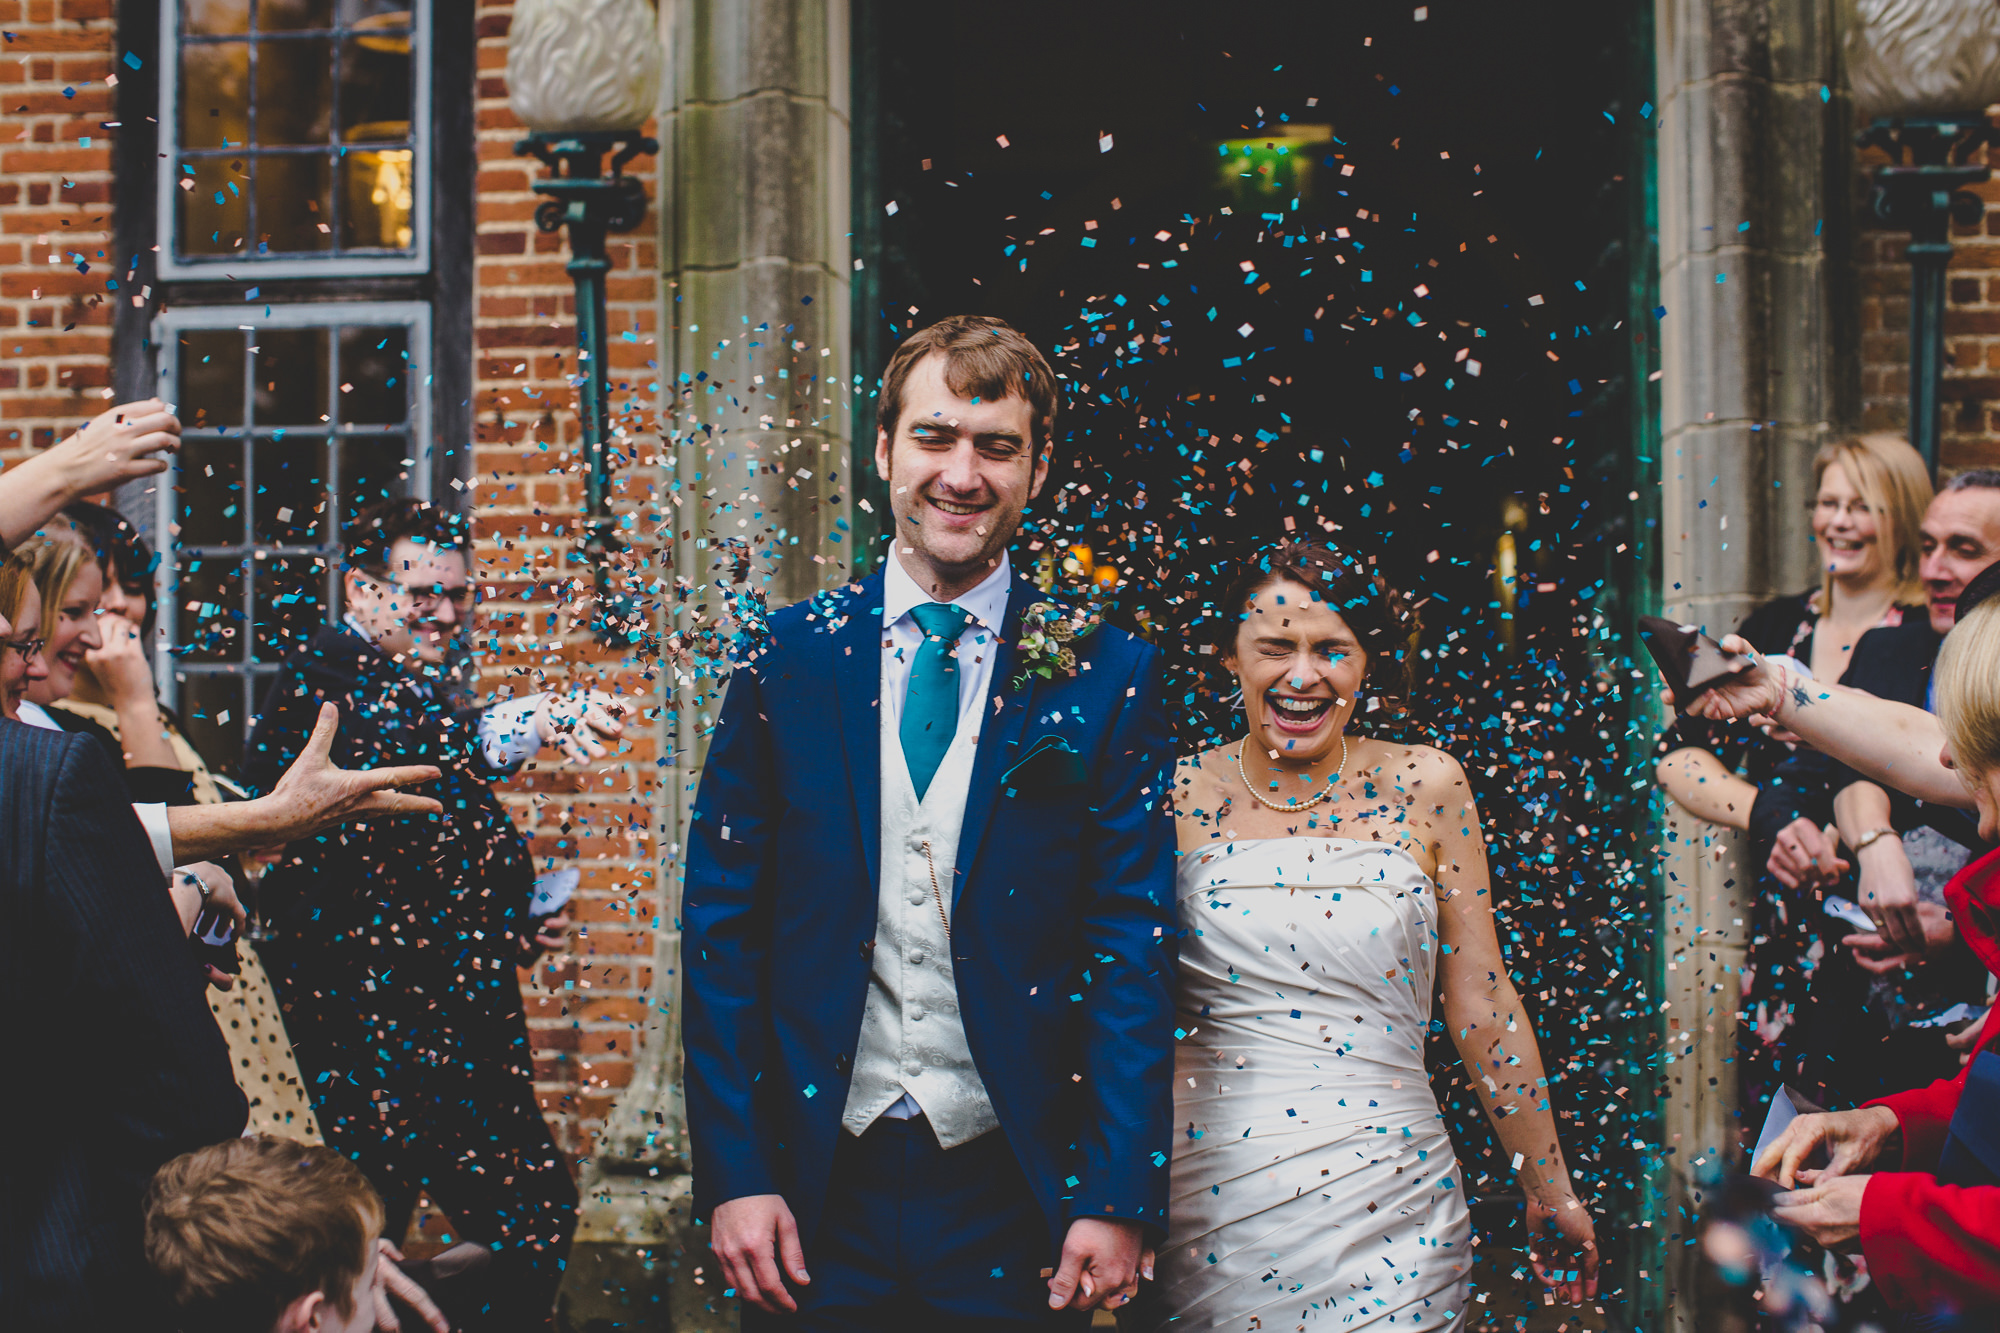 Port Lympne Wedding Photographer